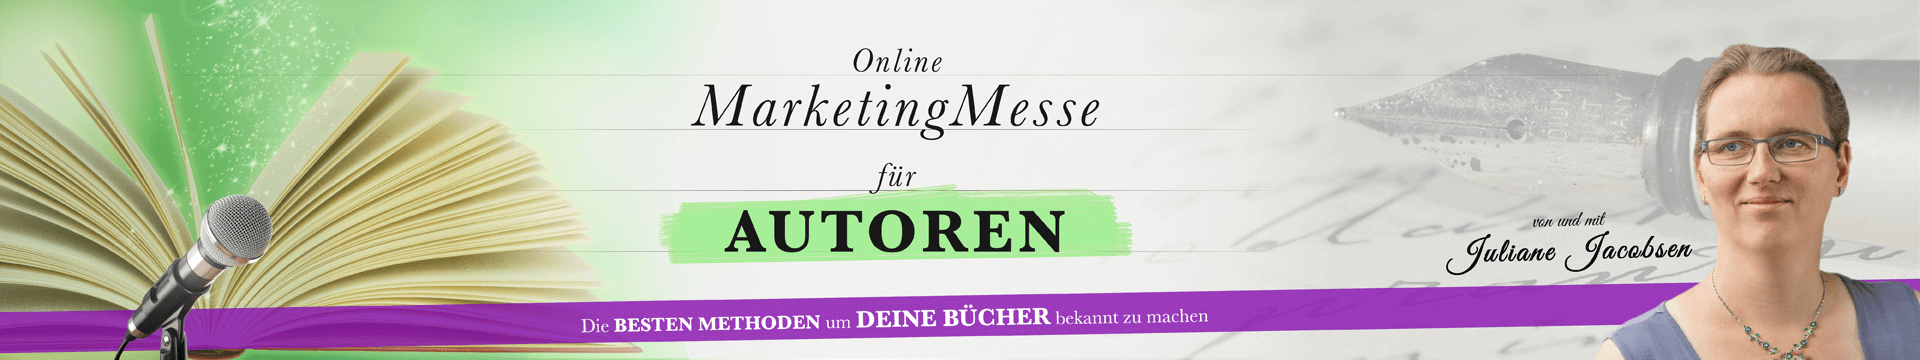 header-marketing-messe-autoren-1920x360